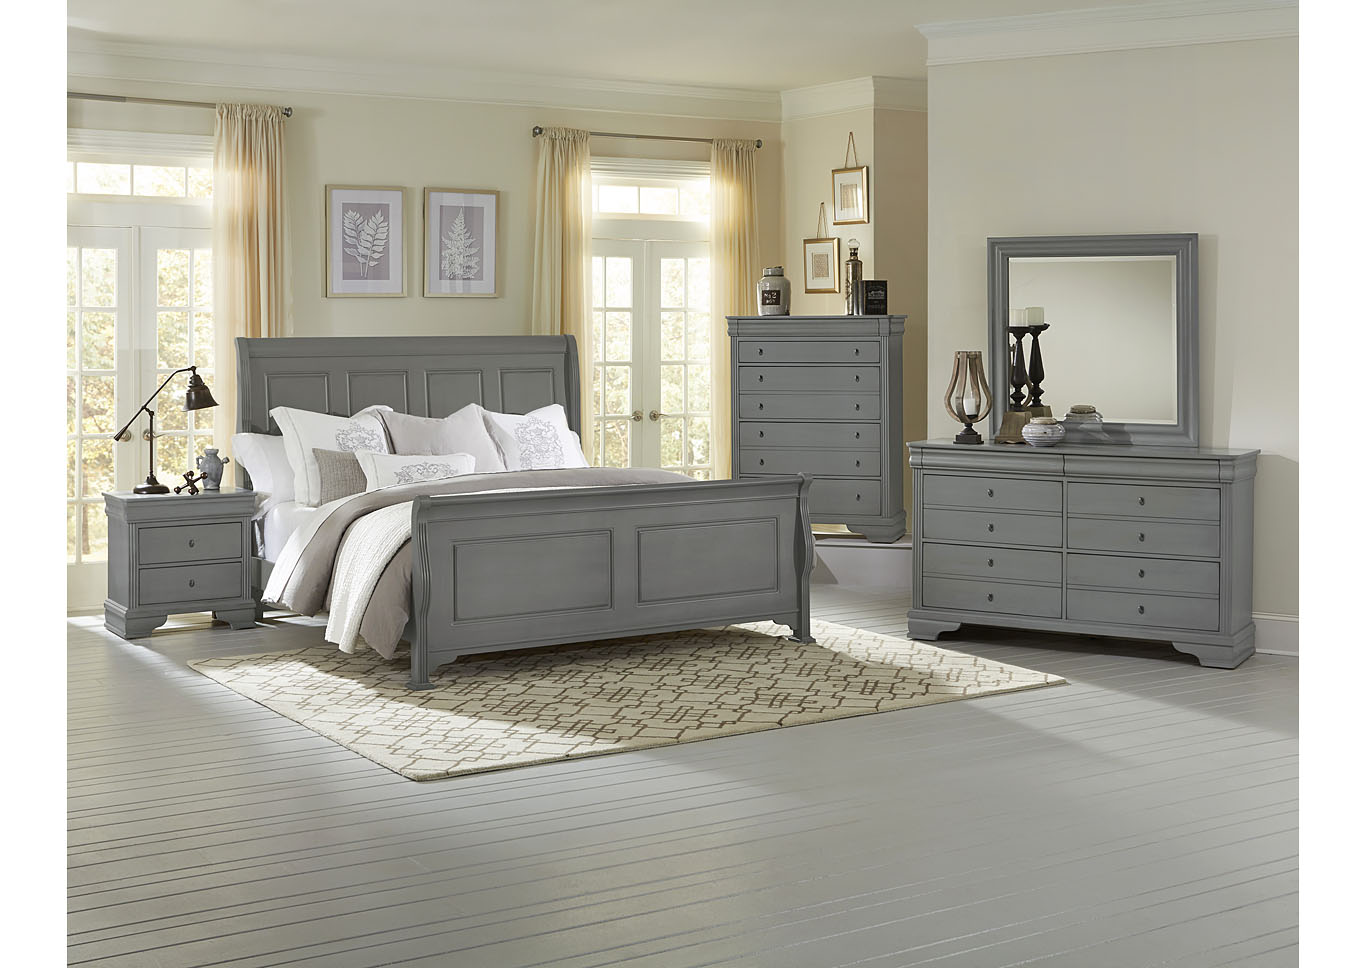 French Market Zinc Queen Poster Bed,Vaughan-Bassett